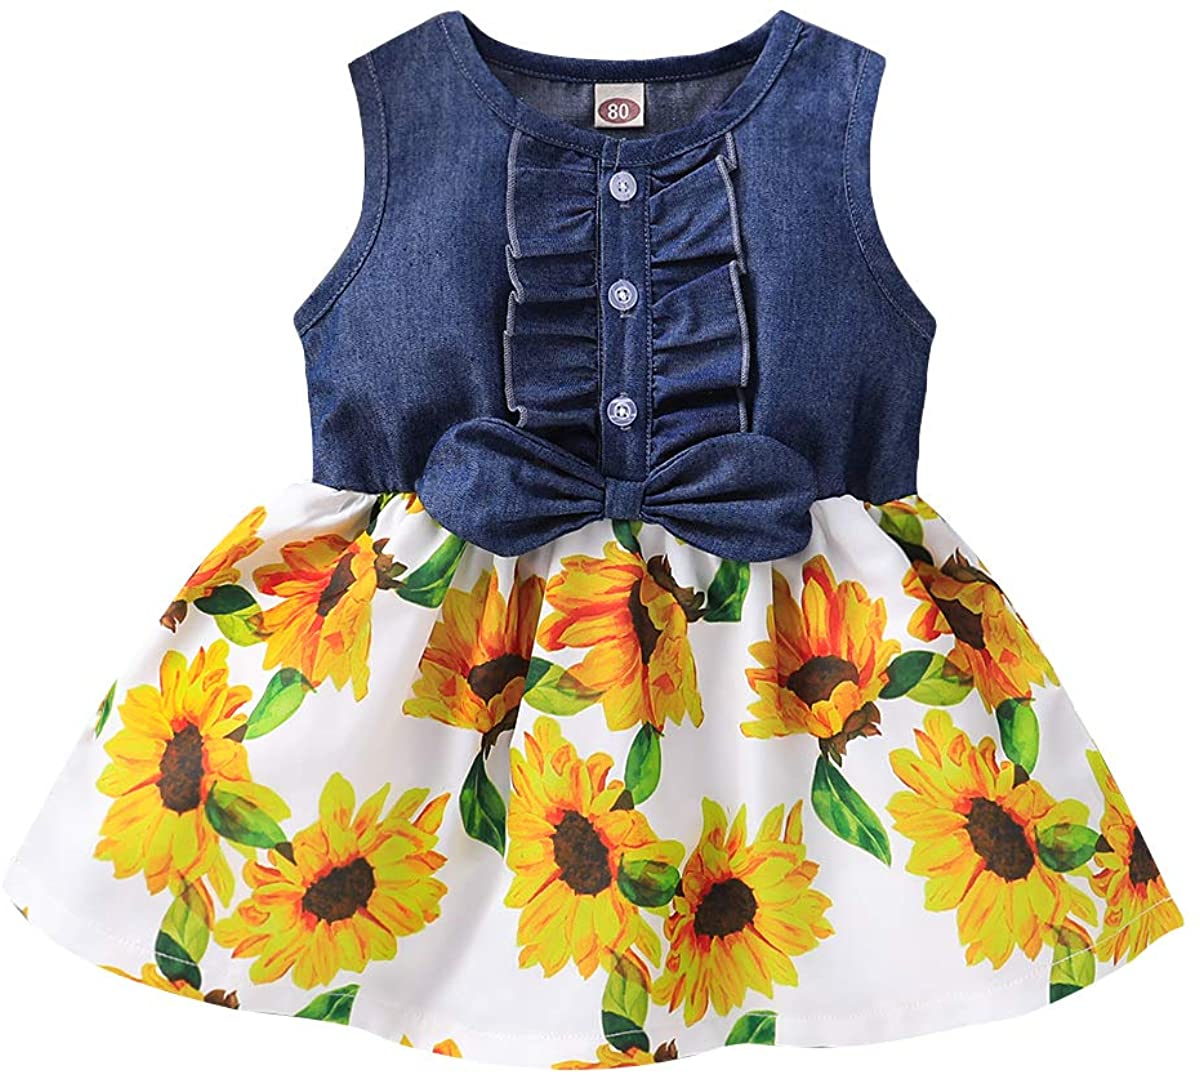 Kucnuzki Toddler Girl Outfits Baby Sunflower Princess Dresses Denim Summer Sleeveless Clothes Jean Tutu Skirts for Girls